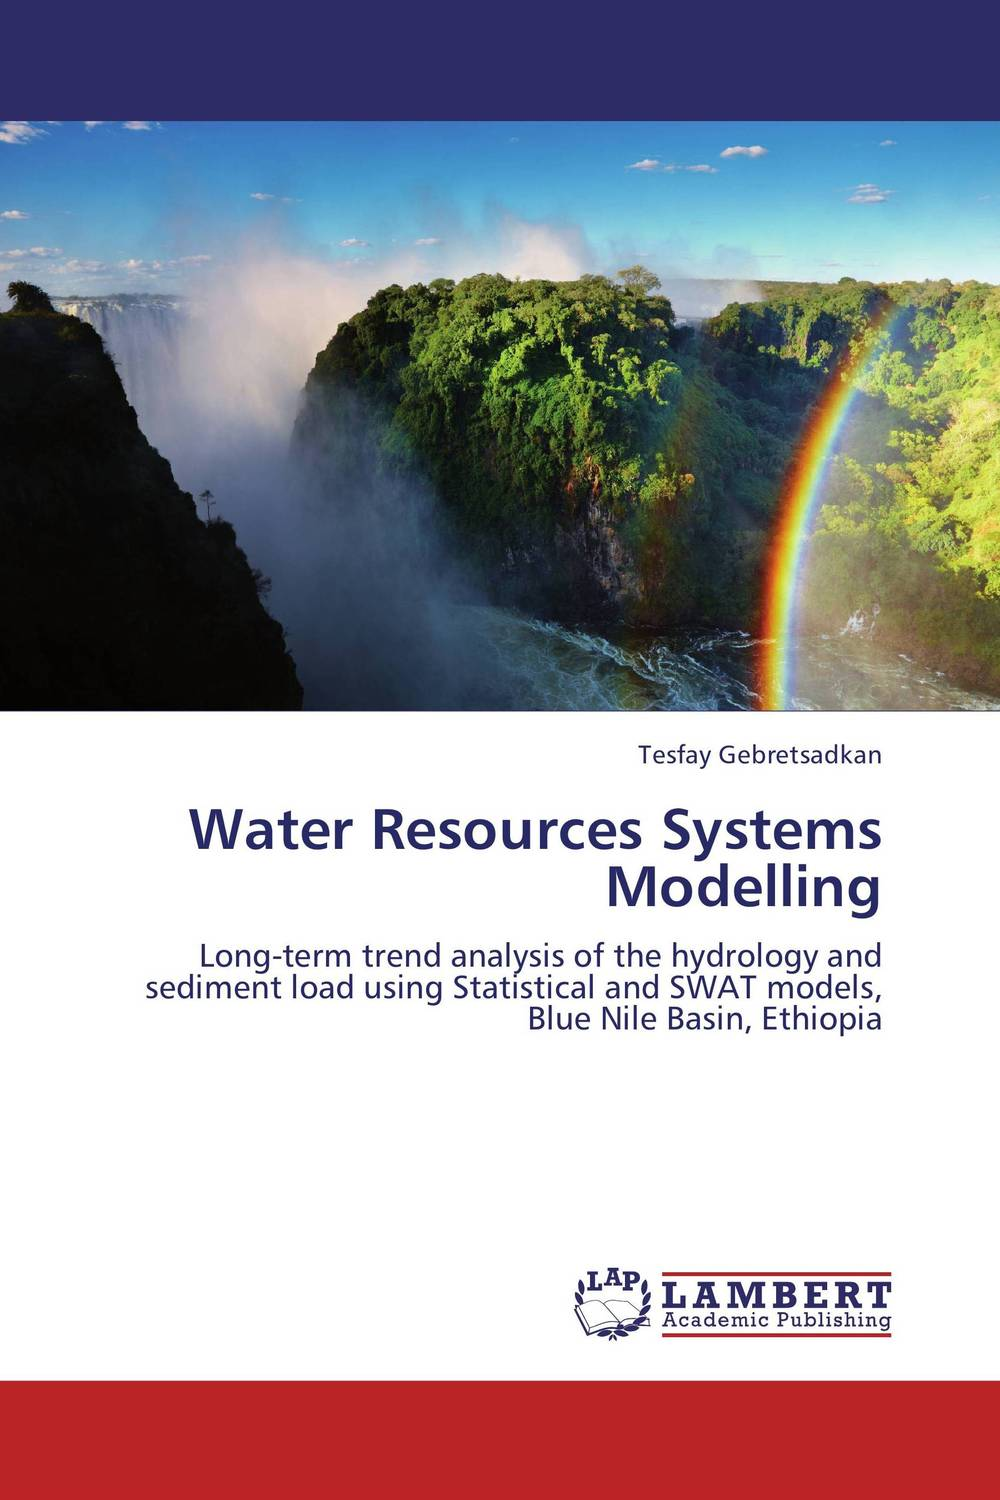 Water Resources Systems Modelling bride of the water god v 3